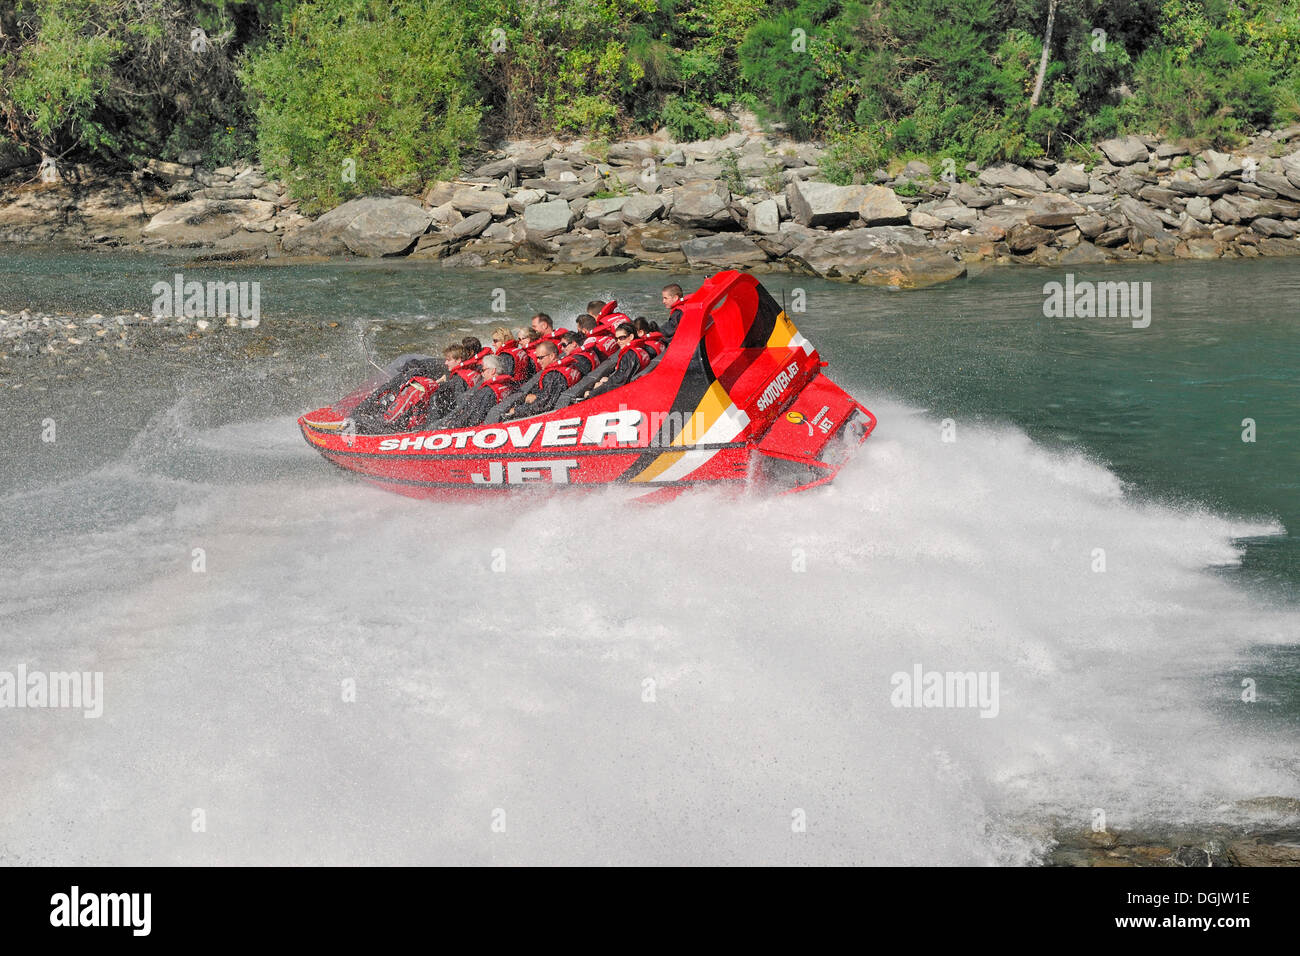 Jetboat, speedboat turning on the Shotover River, Queenstown, South Island, New Zealand - Stock Image